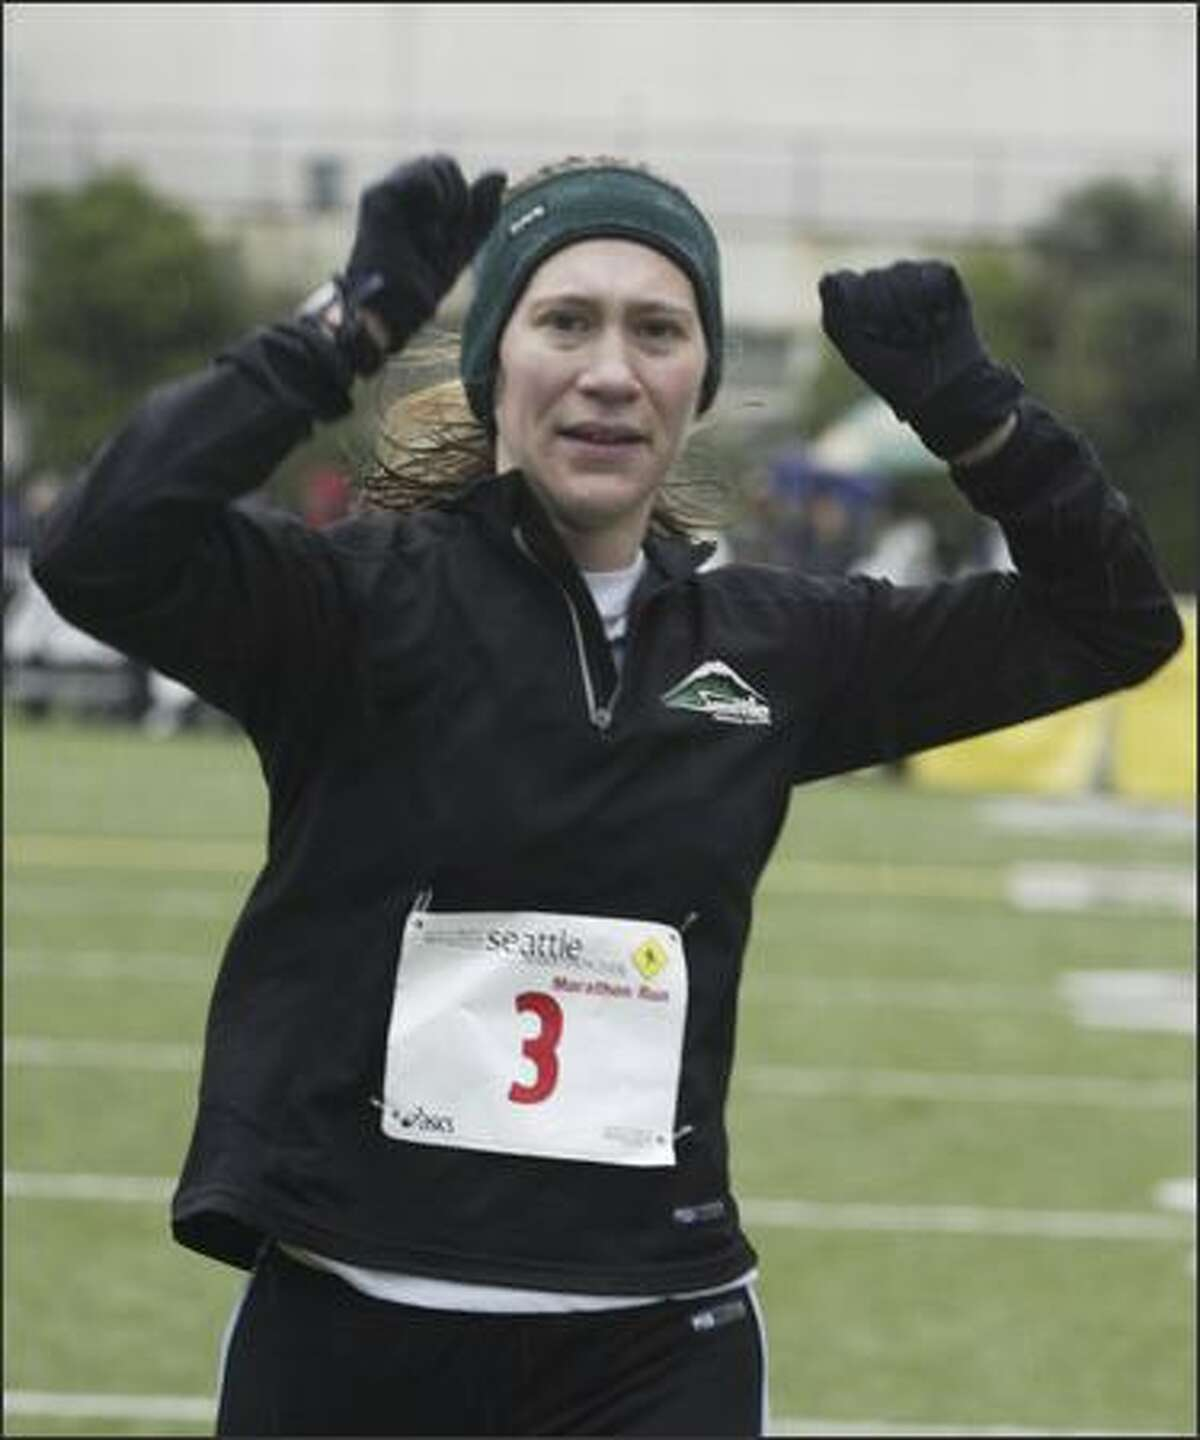 Trisha Steidl, of Seattle, crosses the Seattle Marathon finish line to place first in the Women's Marathon with a time of 3:01:36.